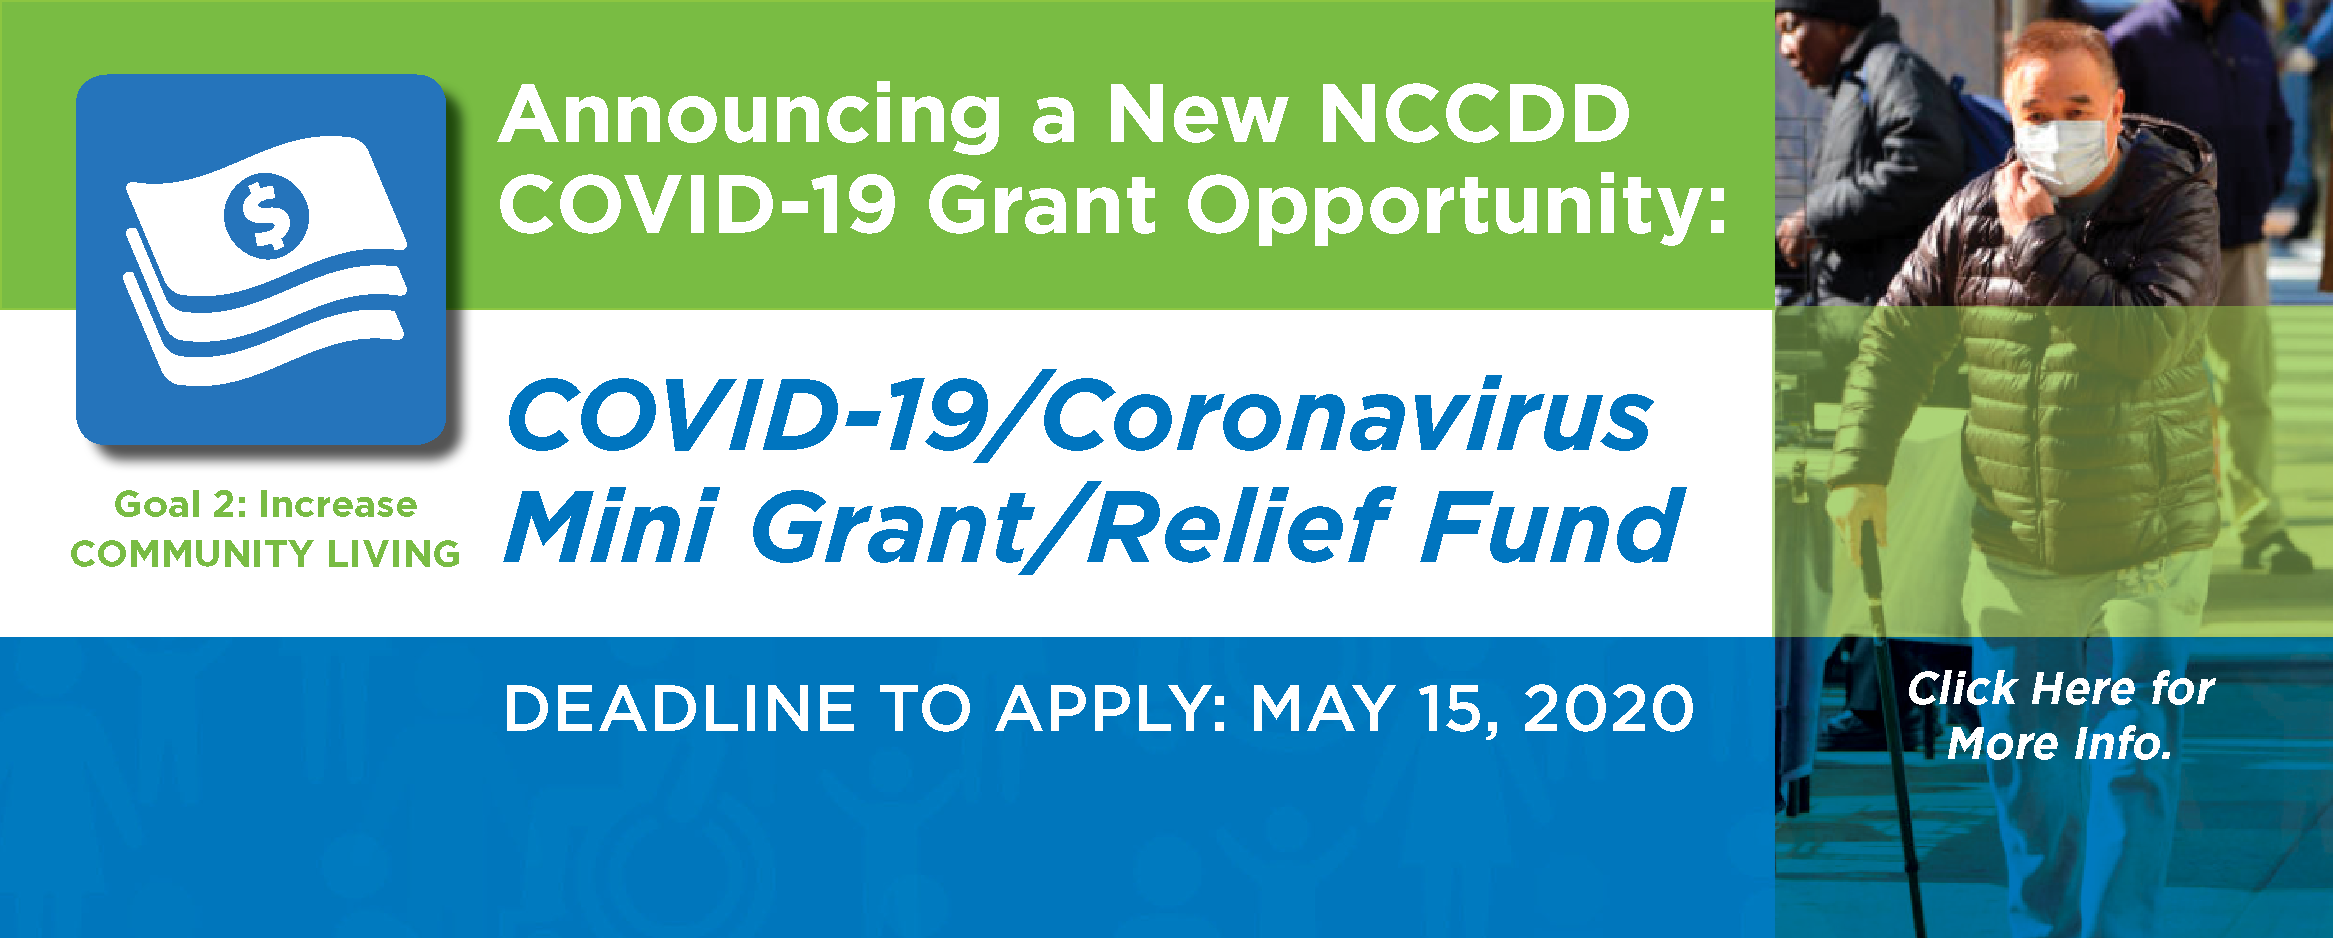 NCCDD Announces COVID-19/Coronavirus Mini Grant/Relief Fund. Deadline to Apply May 15, 2020. Click here for details.